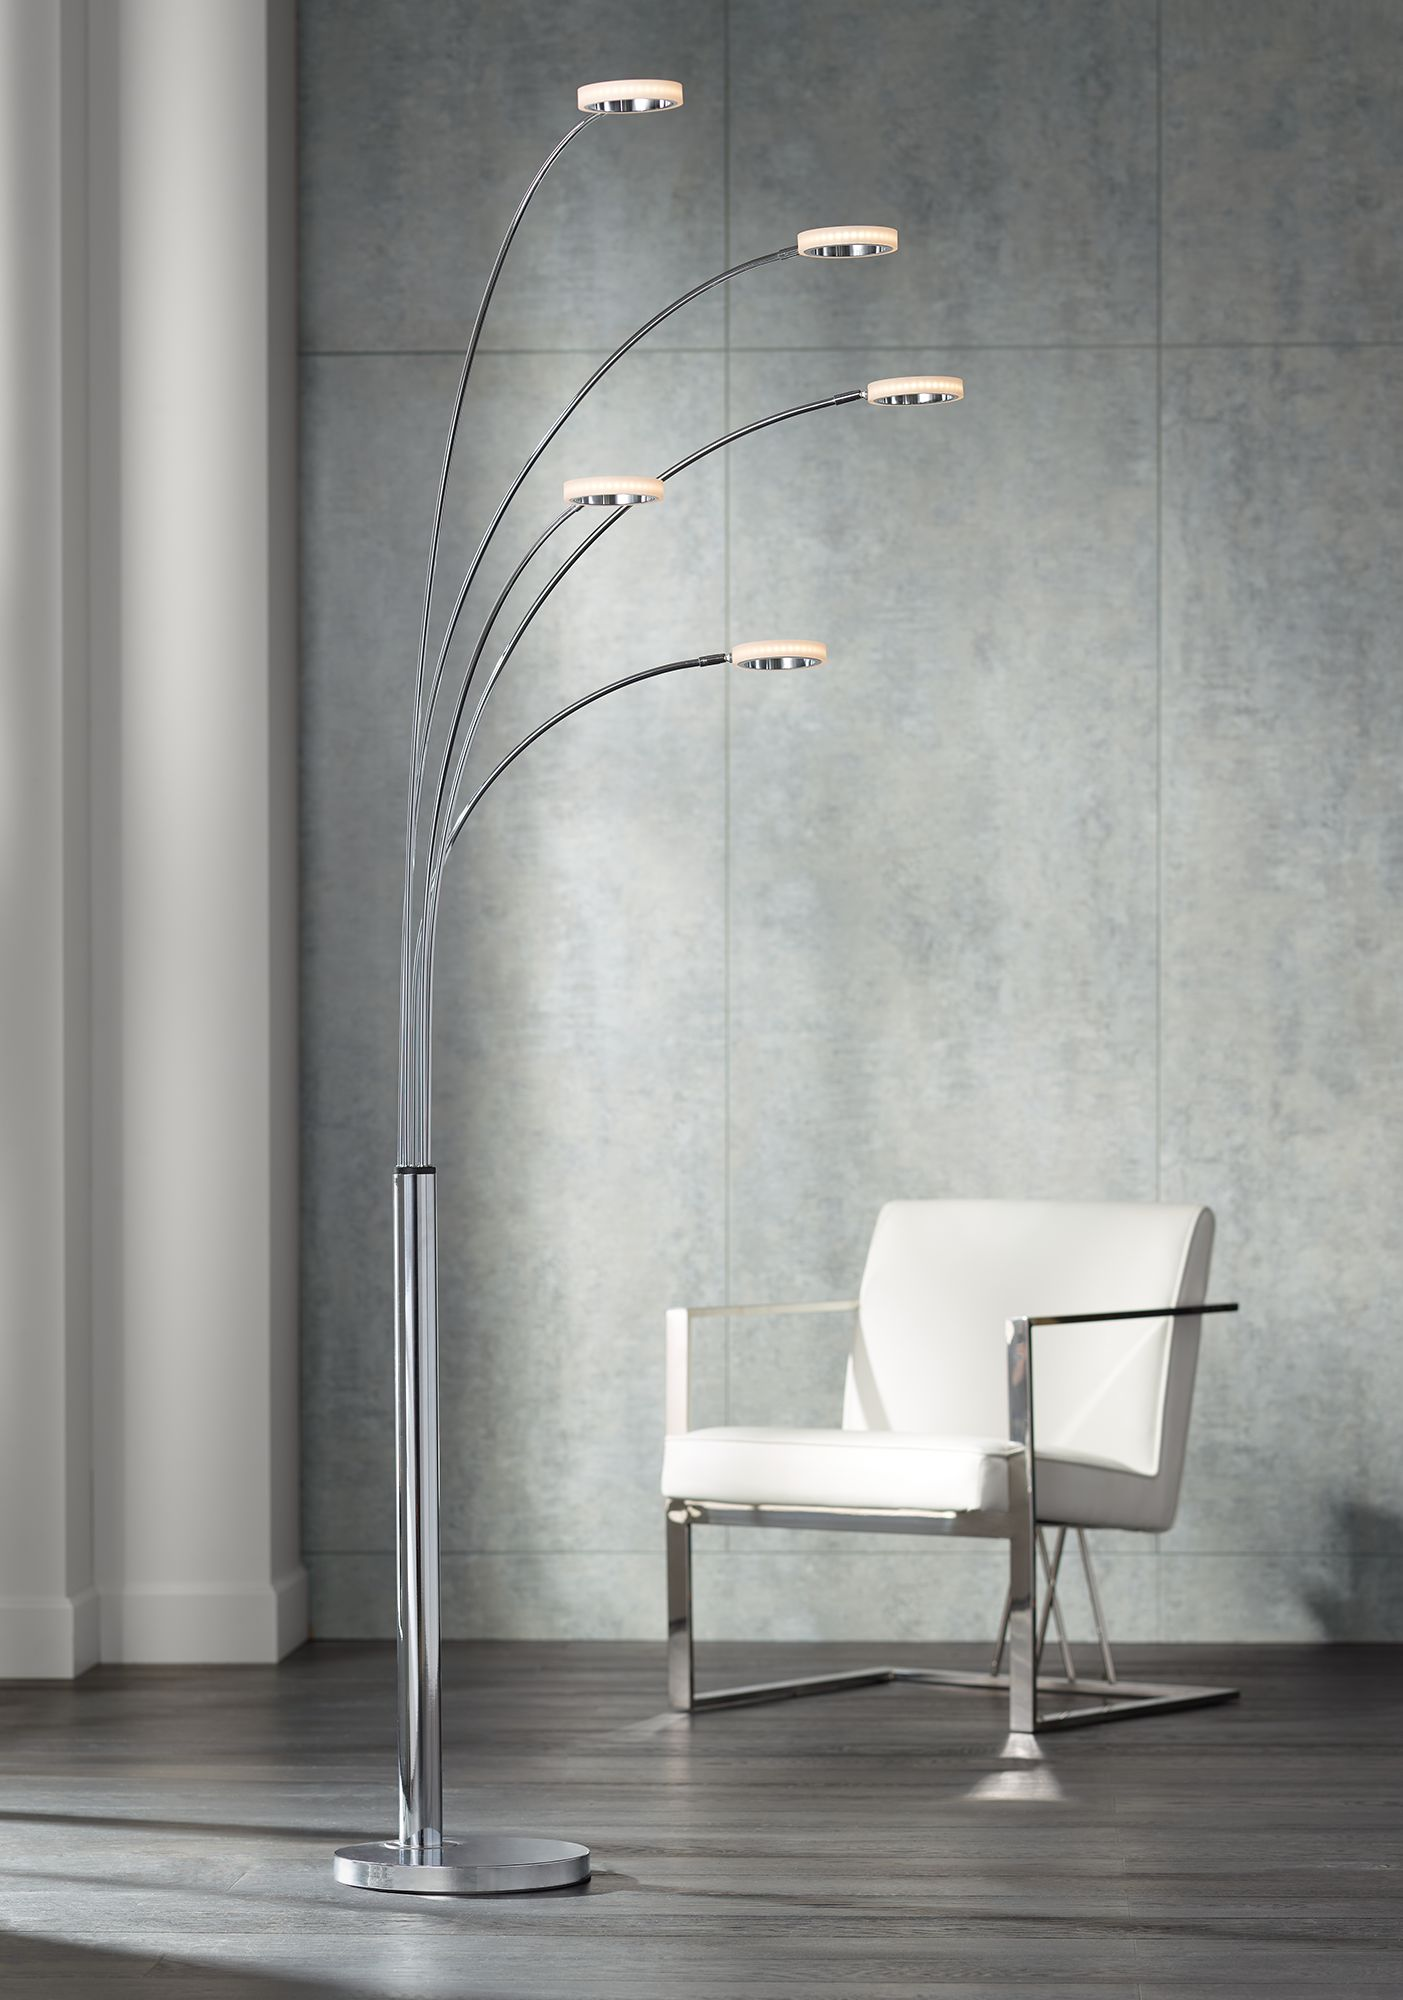 73 In. And Up - Extra Tall, Contemporary, Floor Lamps | Lamps Plus